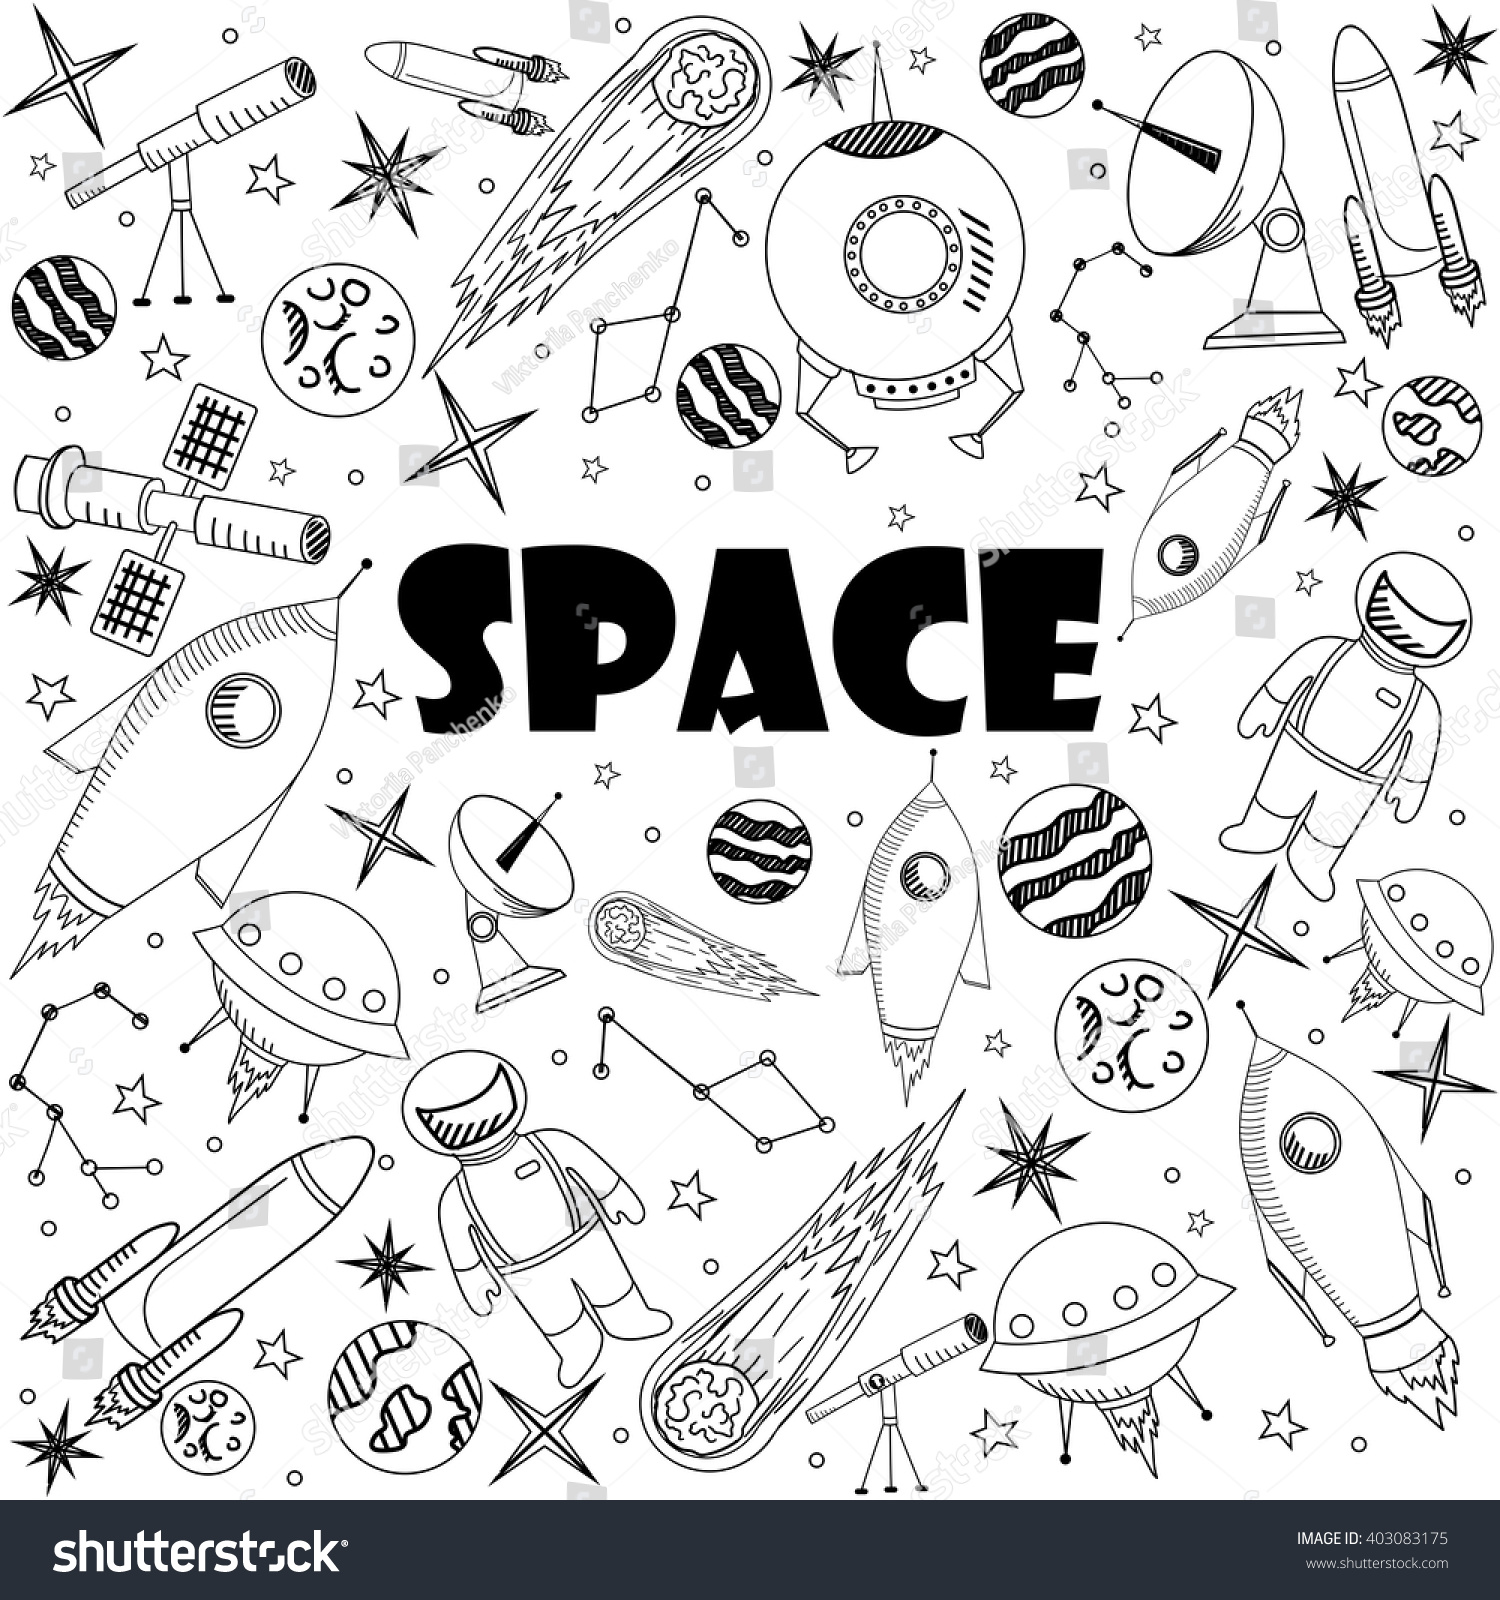 space coloring book line art design vector illustration separate objects hand drawn doodle design